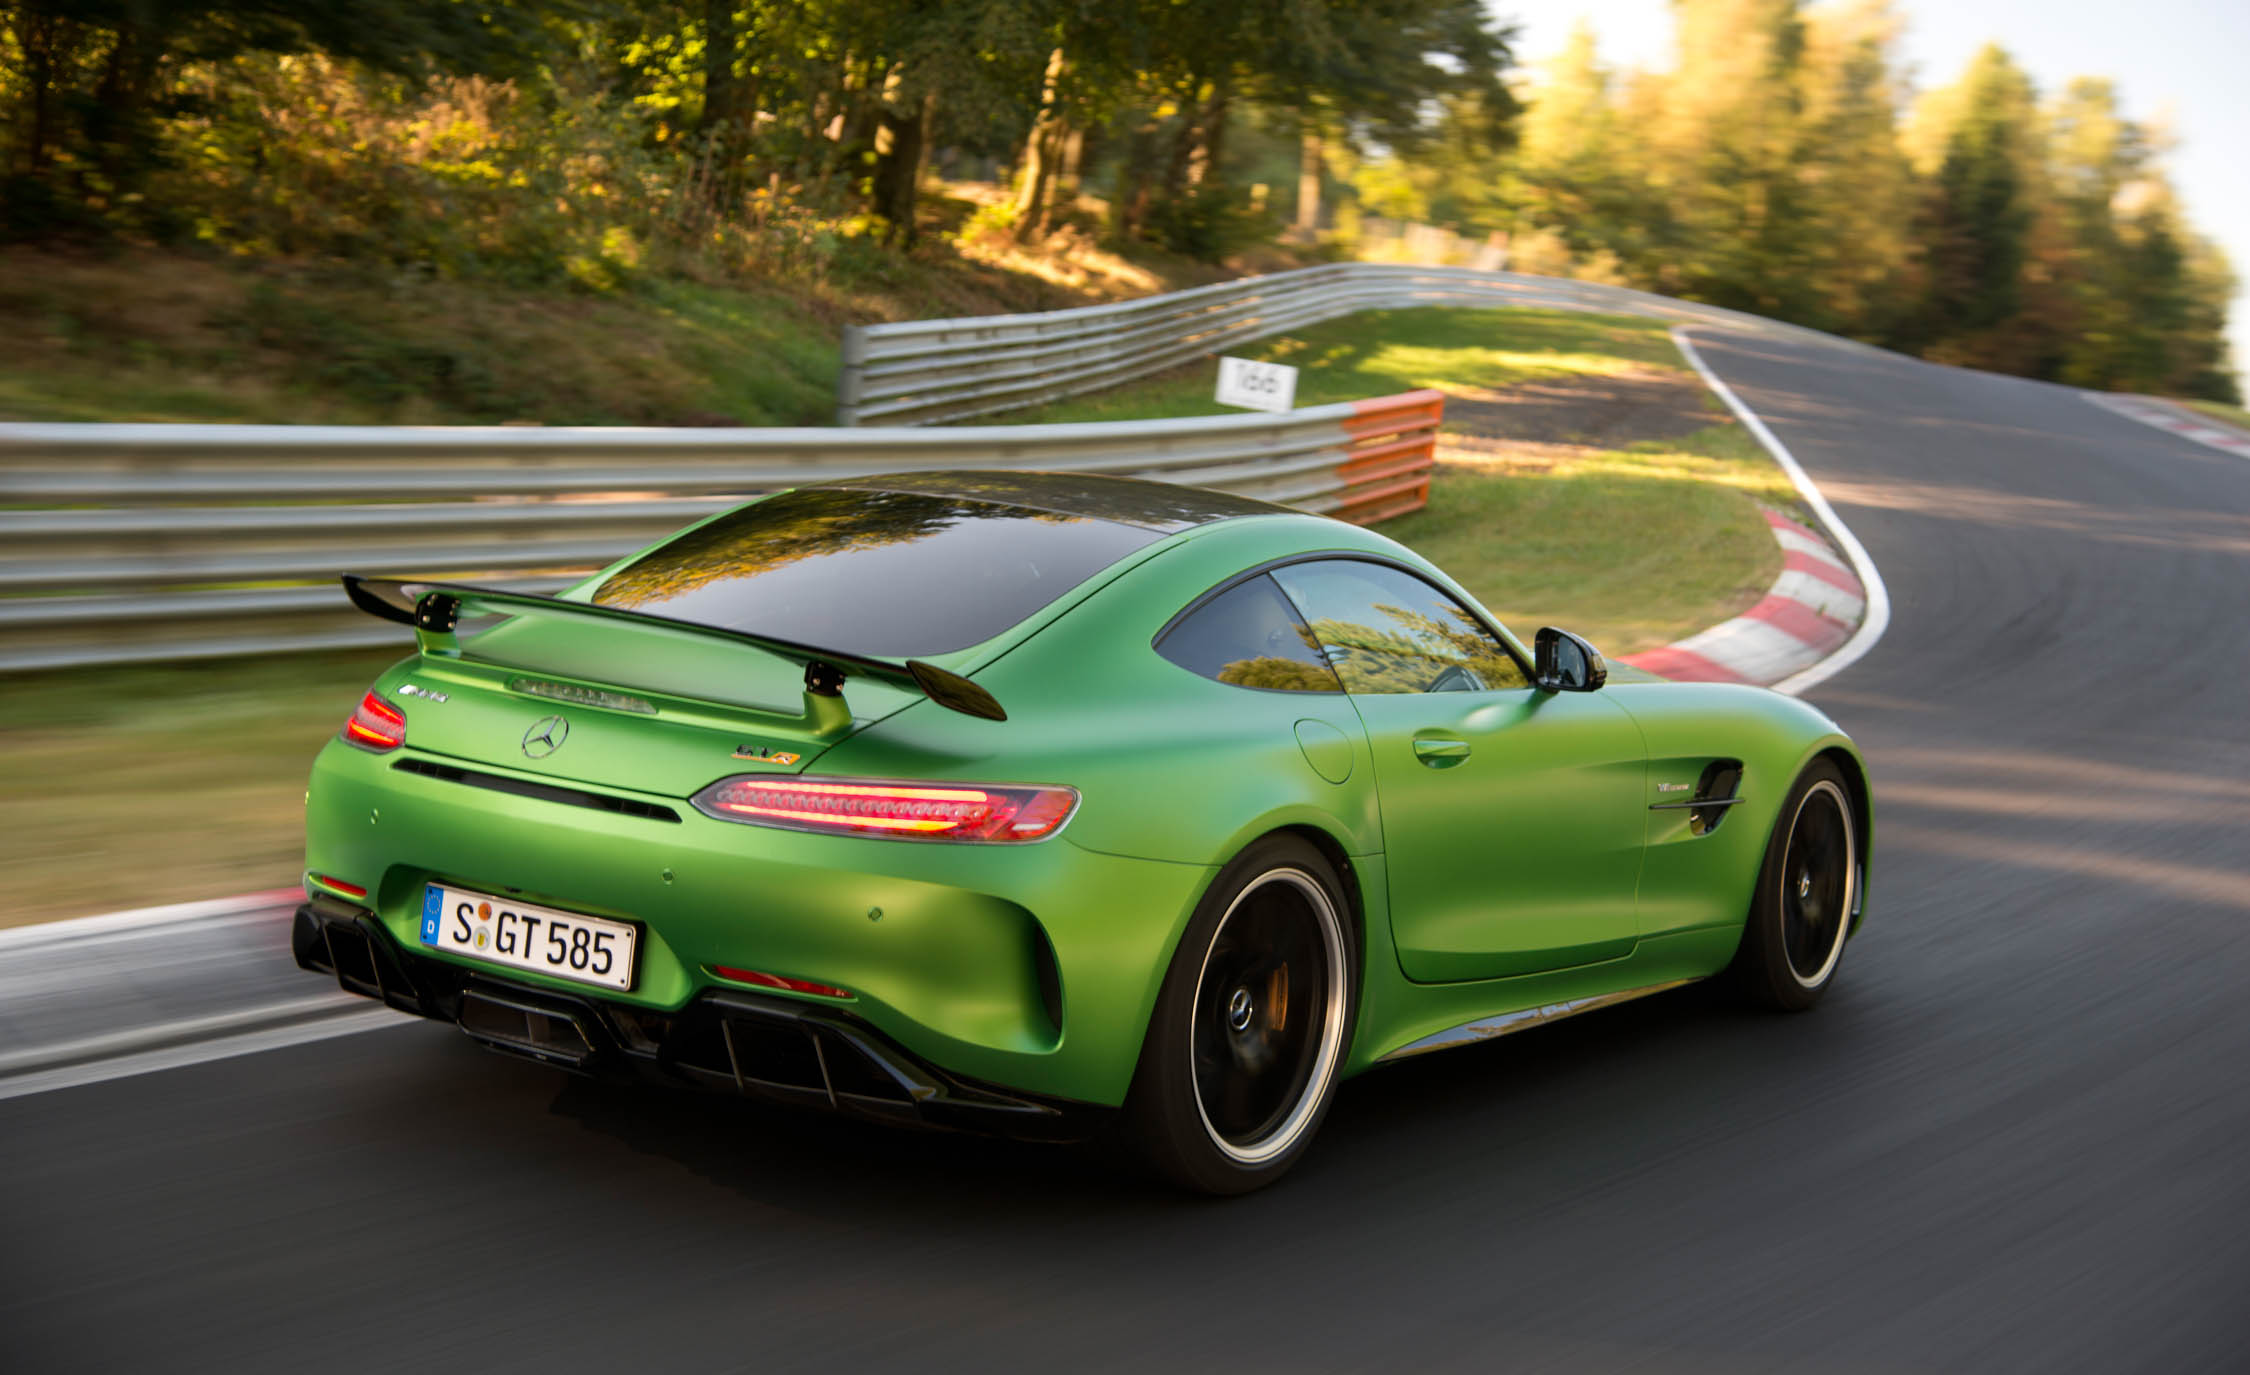 2017 Mercedes Amg Gt R Rear Side View (View 5 of 22)